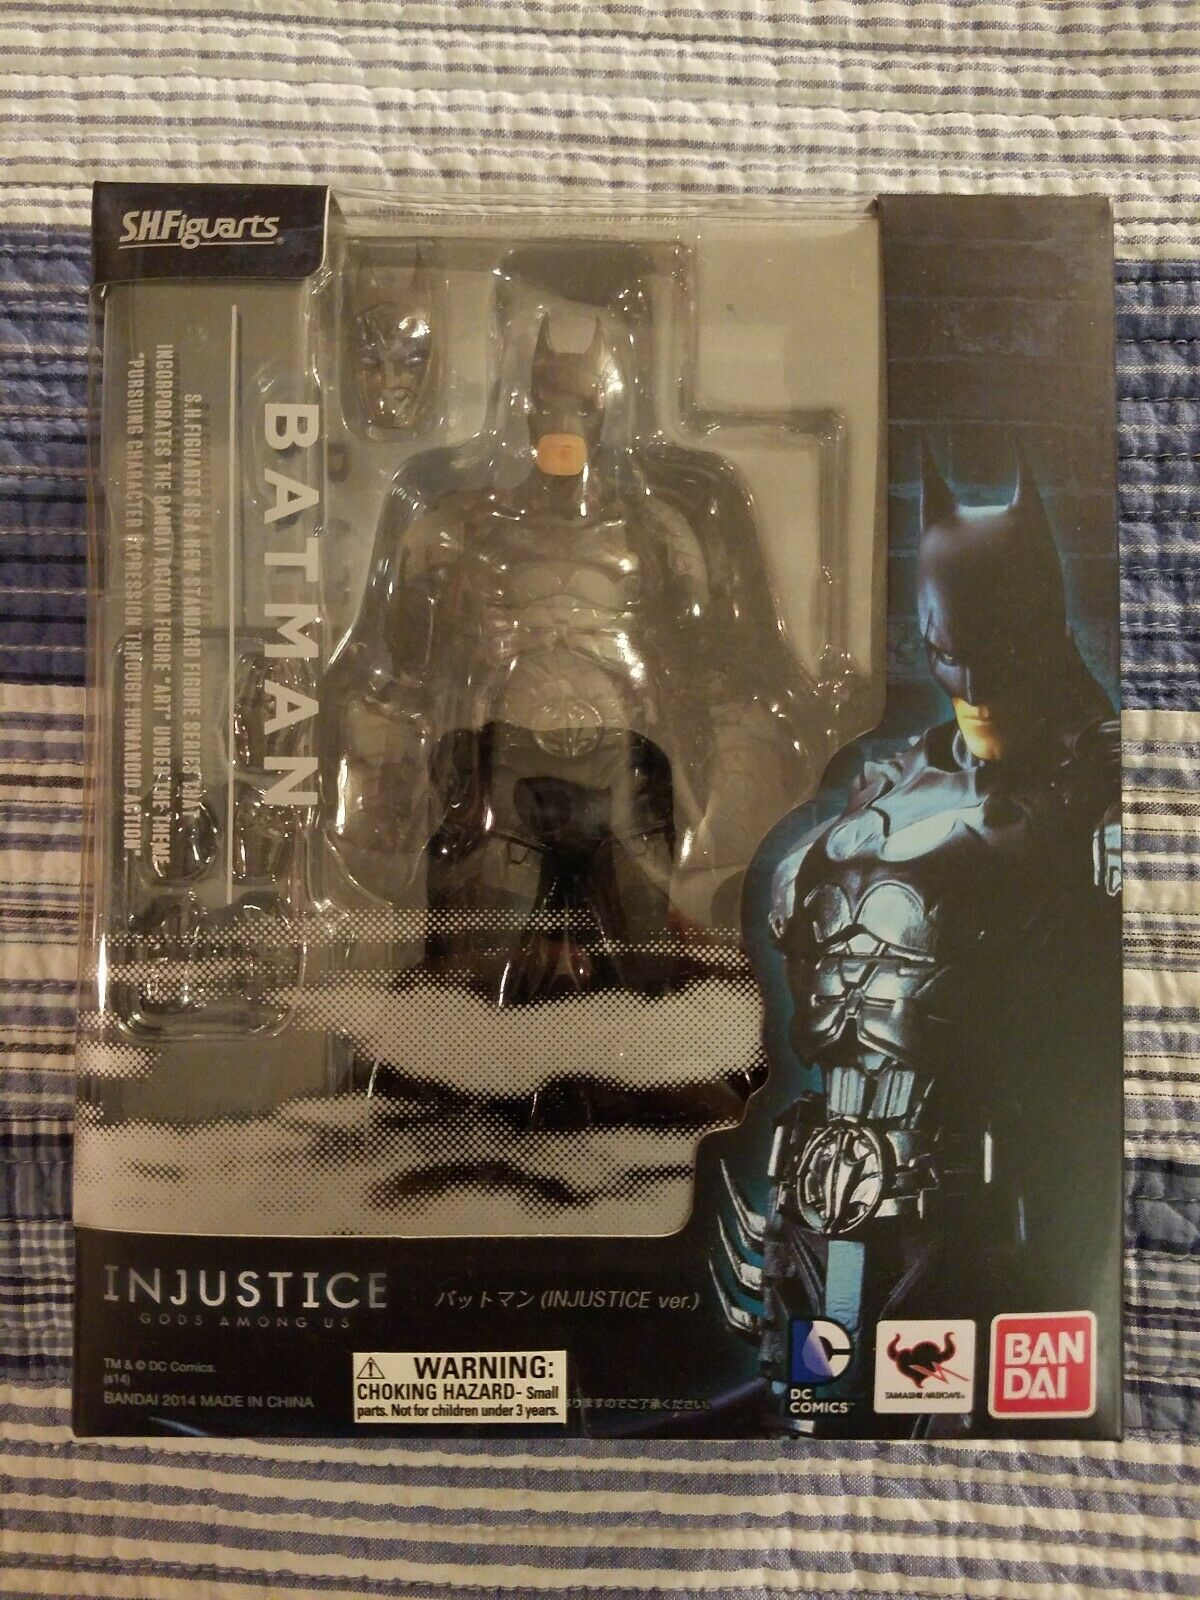 S.H. Figuarts Injustice Batman Action Figure Brand New